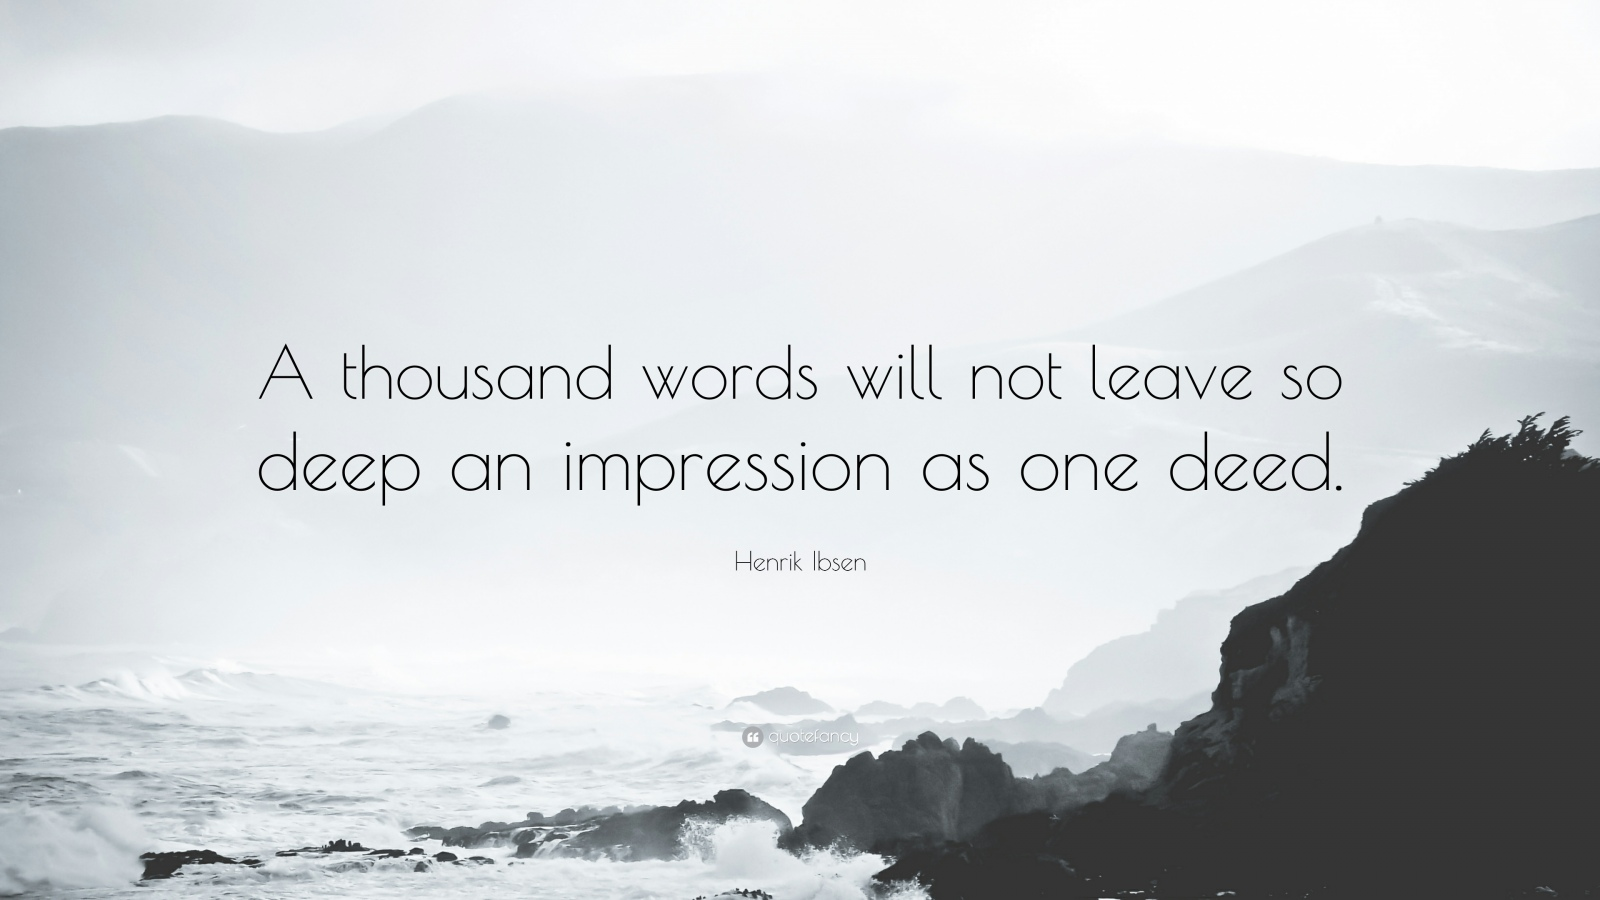 """Henrik Ibsen Quote: """"A thousand words will not leave so deep an impression as one deed."""" (14 wallpapers) - Quotefancy"""